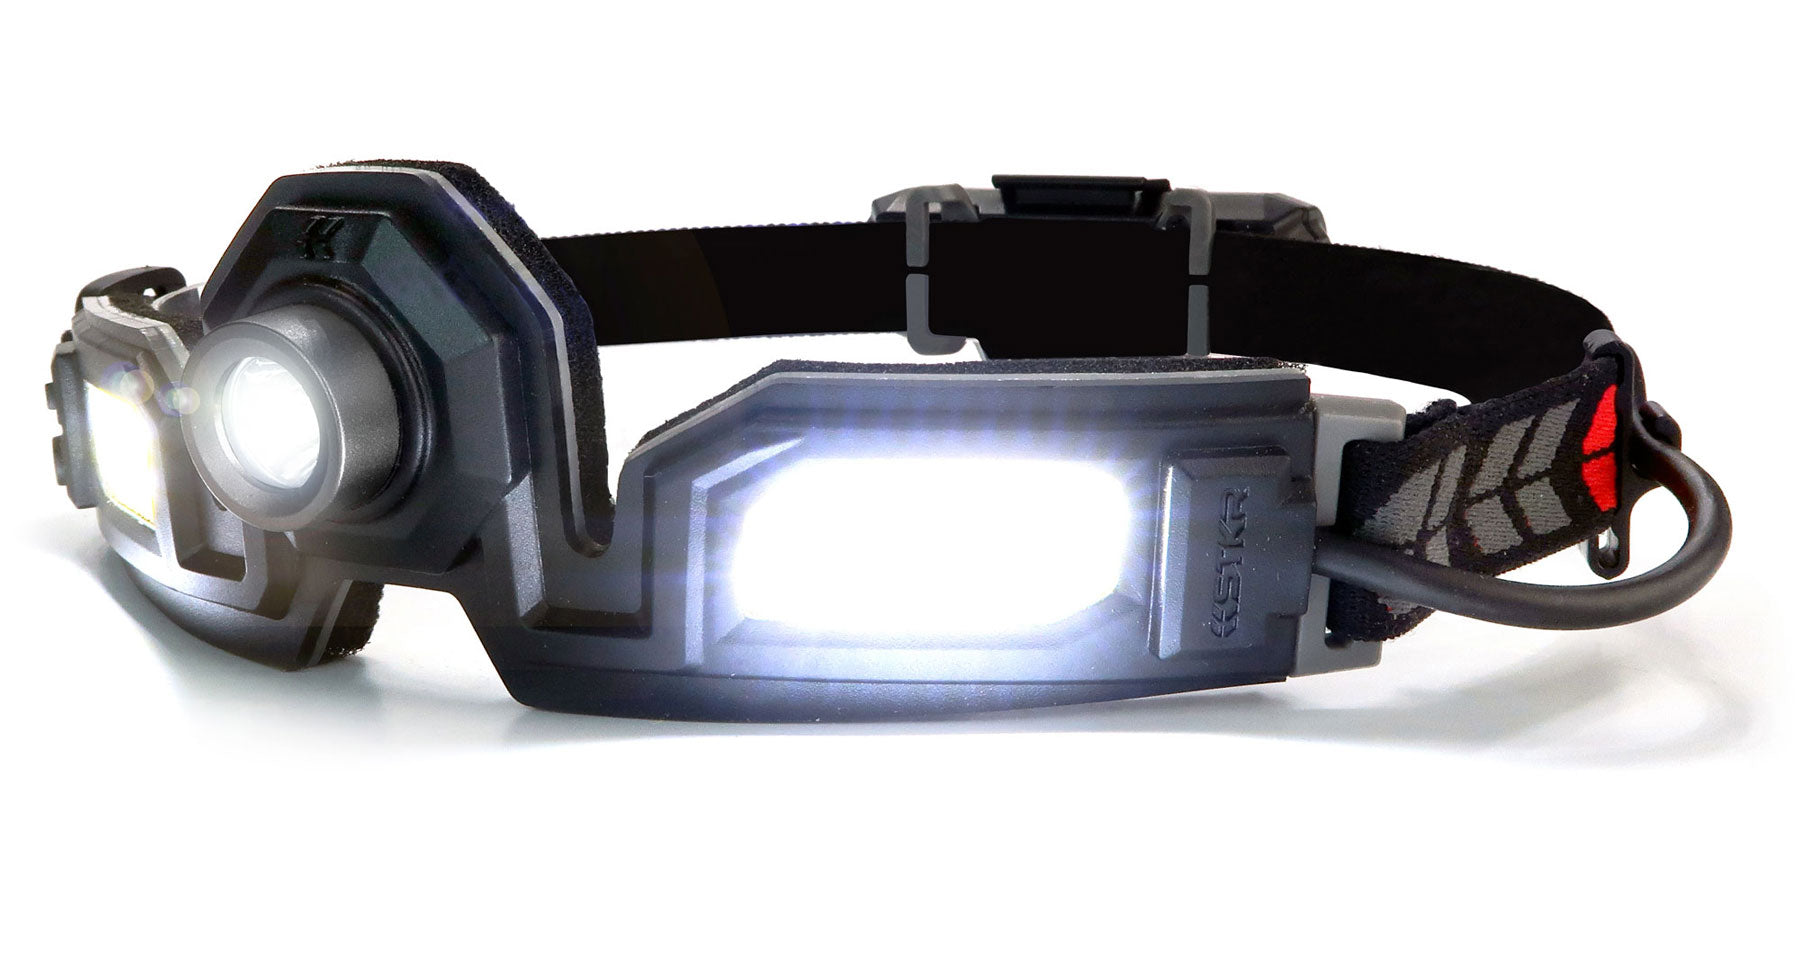 STKR Concepts FLEXIT Headlamp PRO 6.5 - 650 lumen dual spot light and flood light headlamp - striker